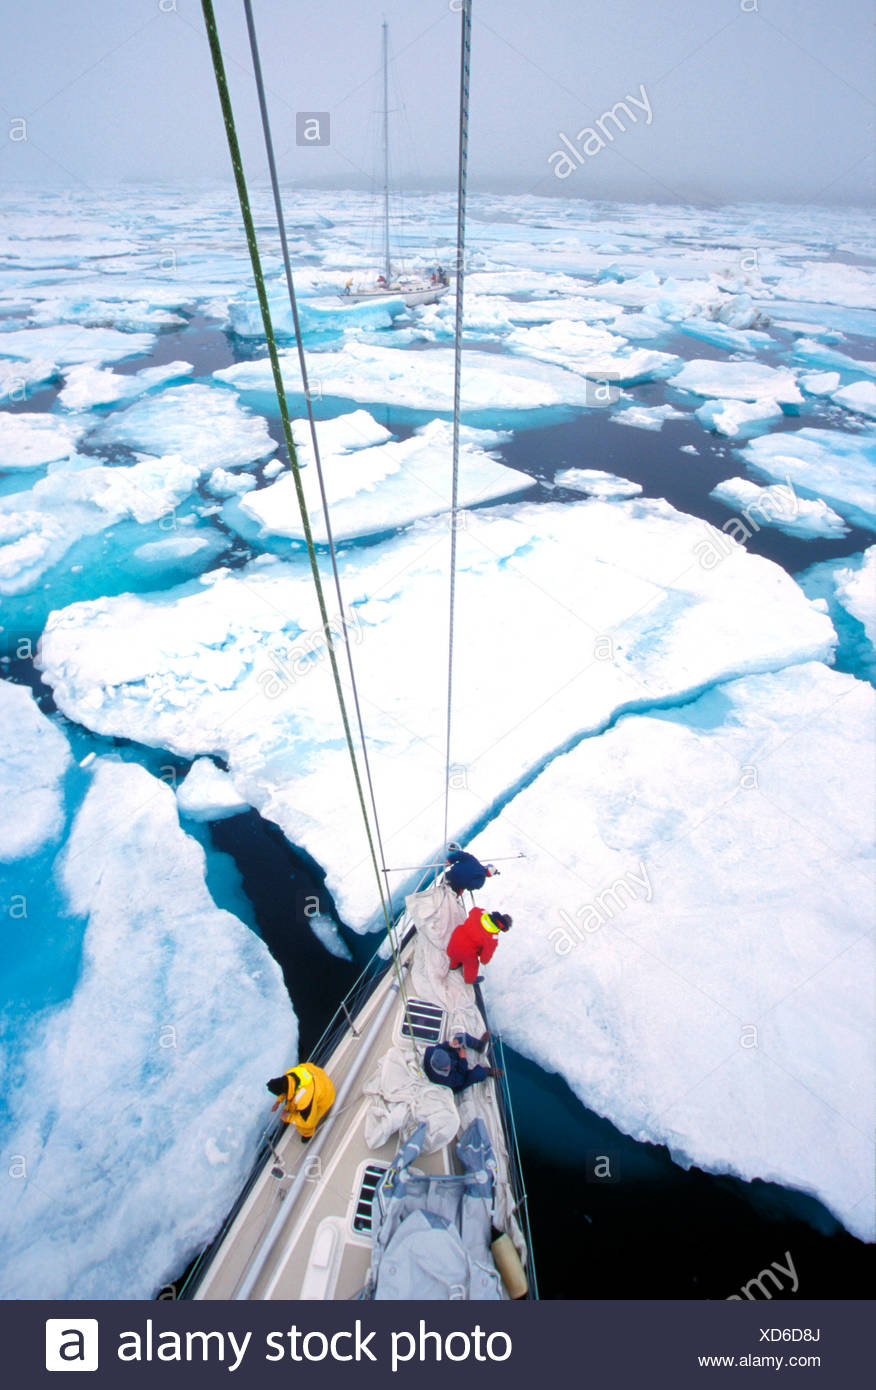 The Yacht Pelagic locked in the ice in Antartica - Stock Image